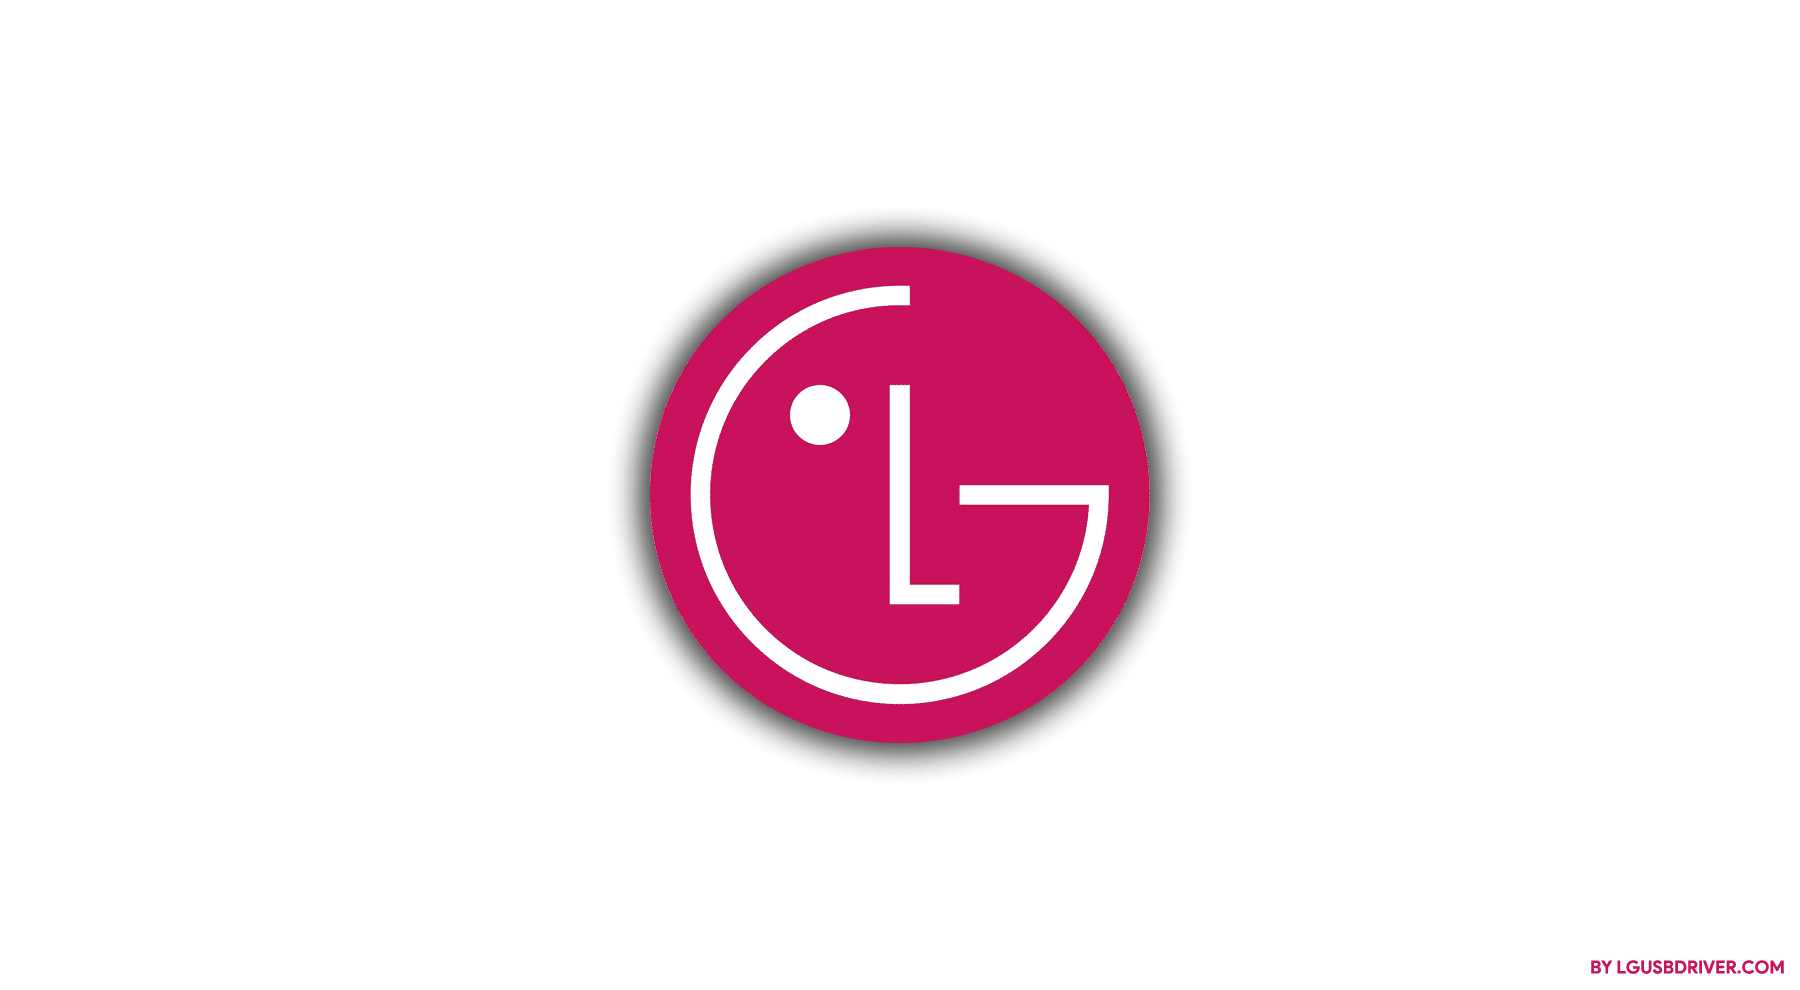 LG Wallpapers 04